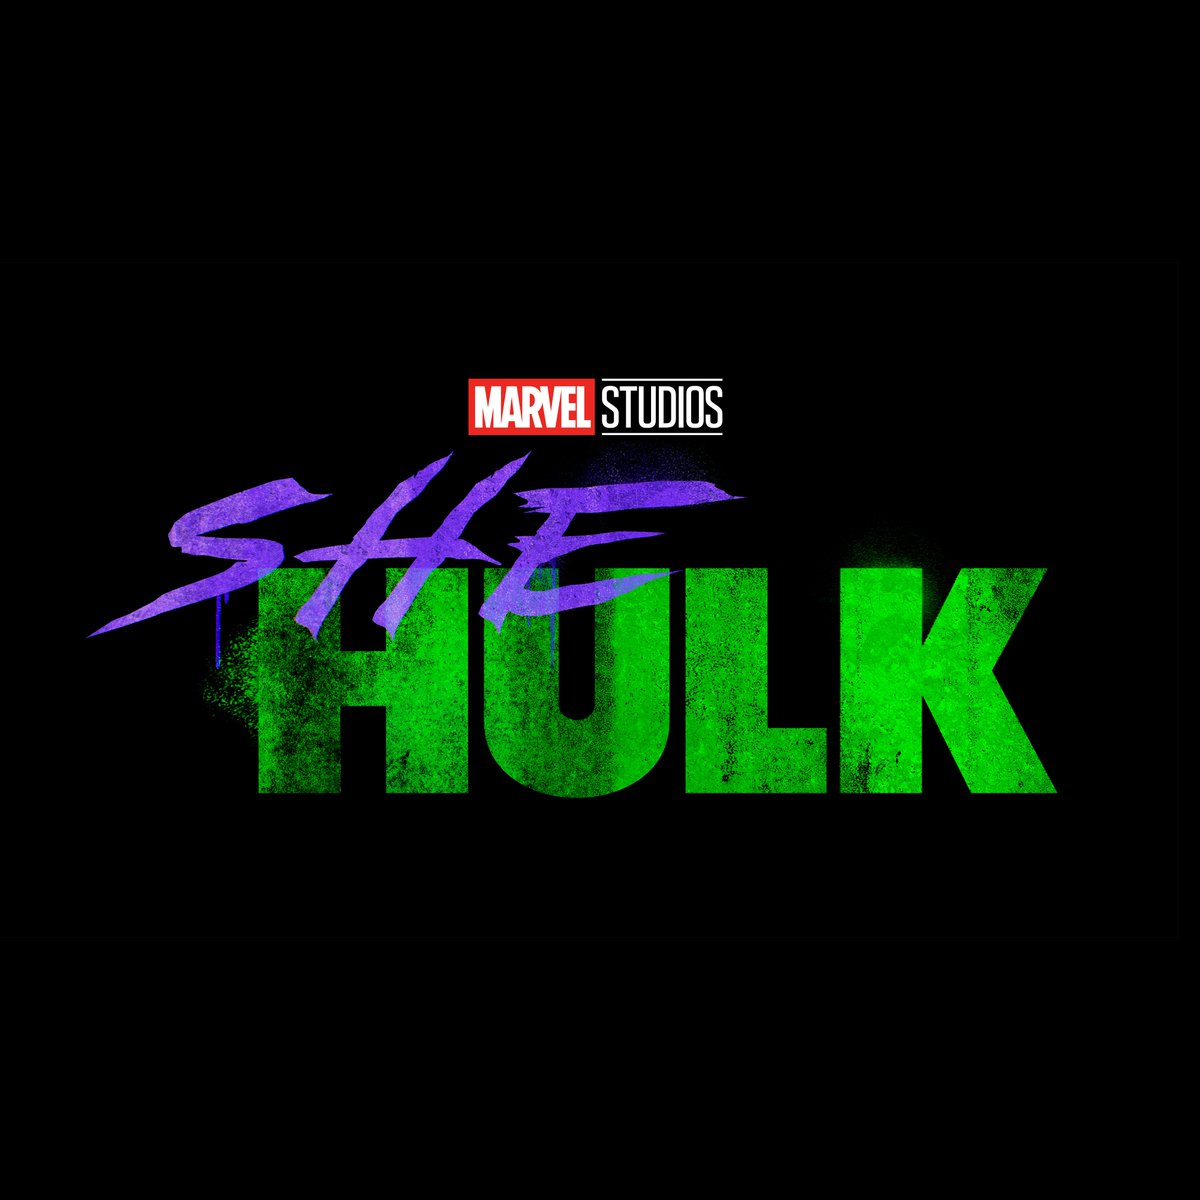 Just announced at #D23Expo, SHE-HULK, an original series from Marvel Studios, only on Disney+